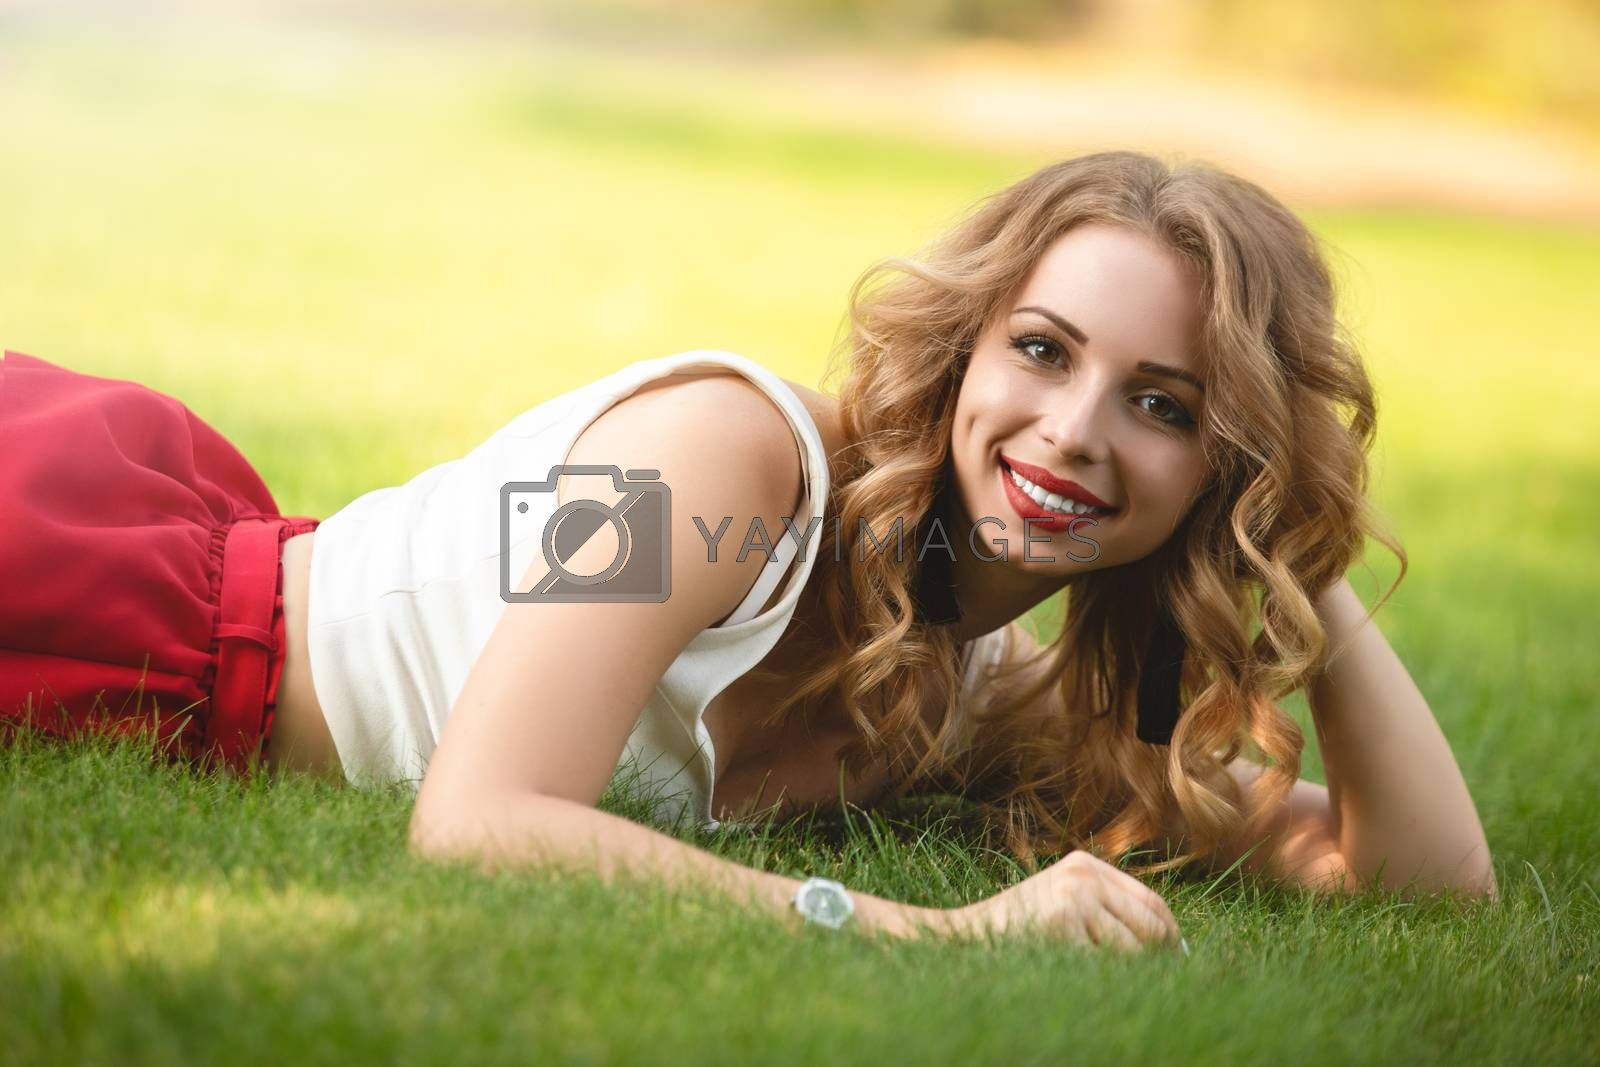 Top view of attractive female model lying on green grass in park and looking at camera during time for taking rest, portrait of Caucasian woman with blond hair spending day at nature.summer time